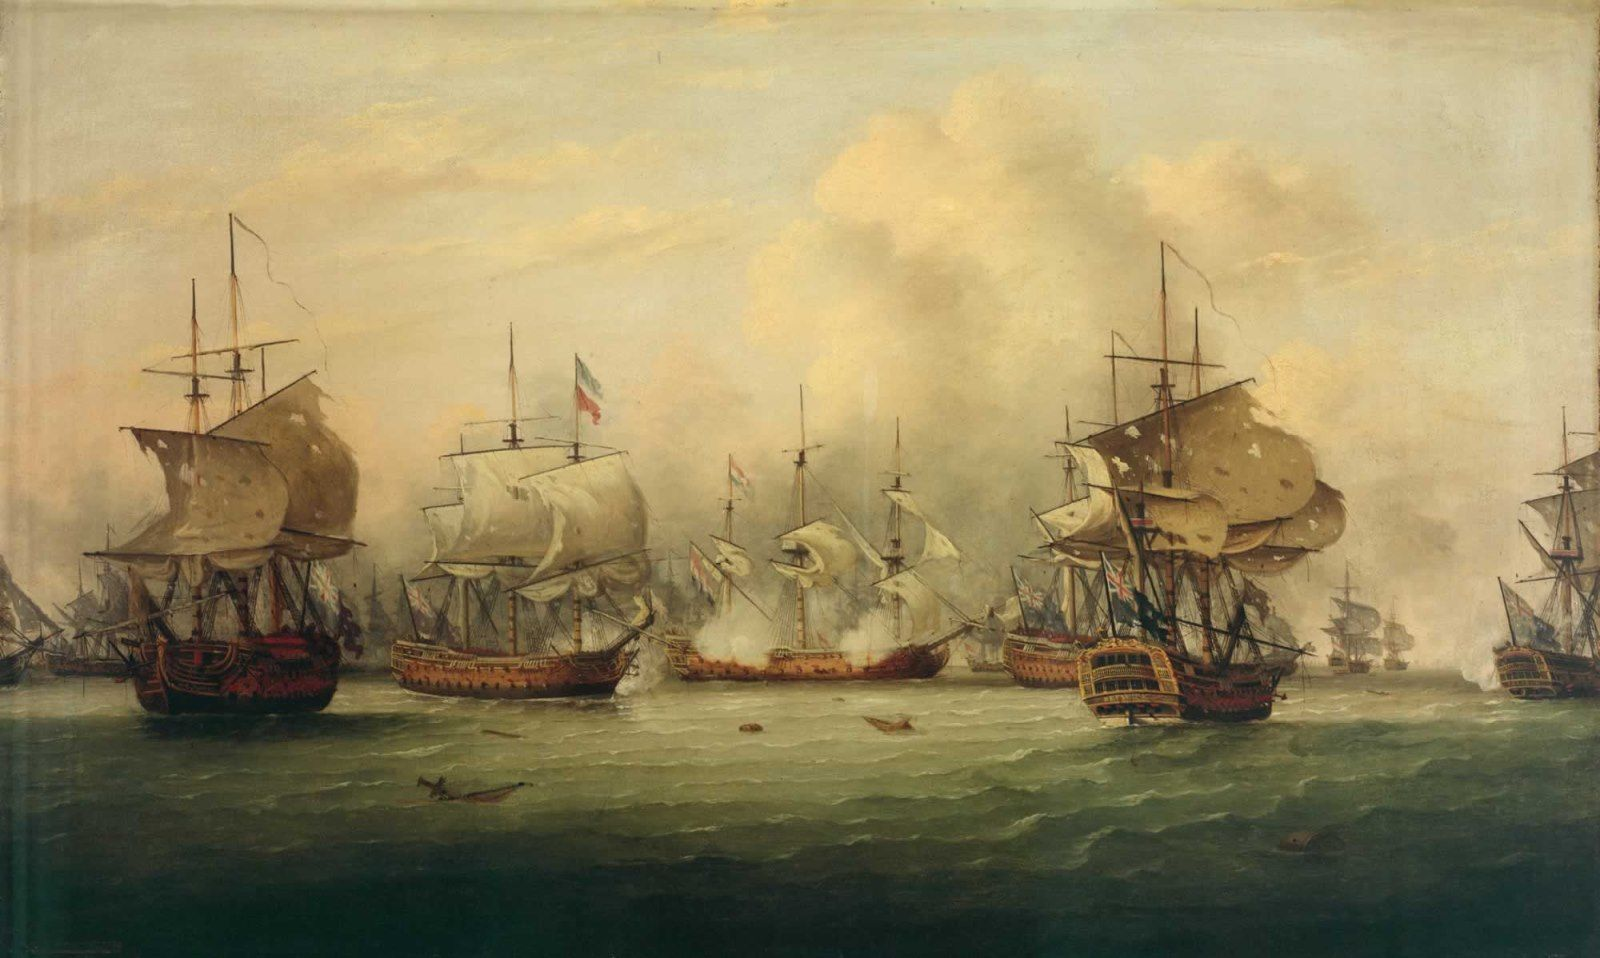 The Battle of the Dogger Bank by Thomas Luny